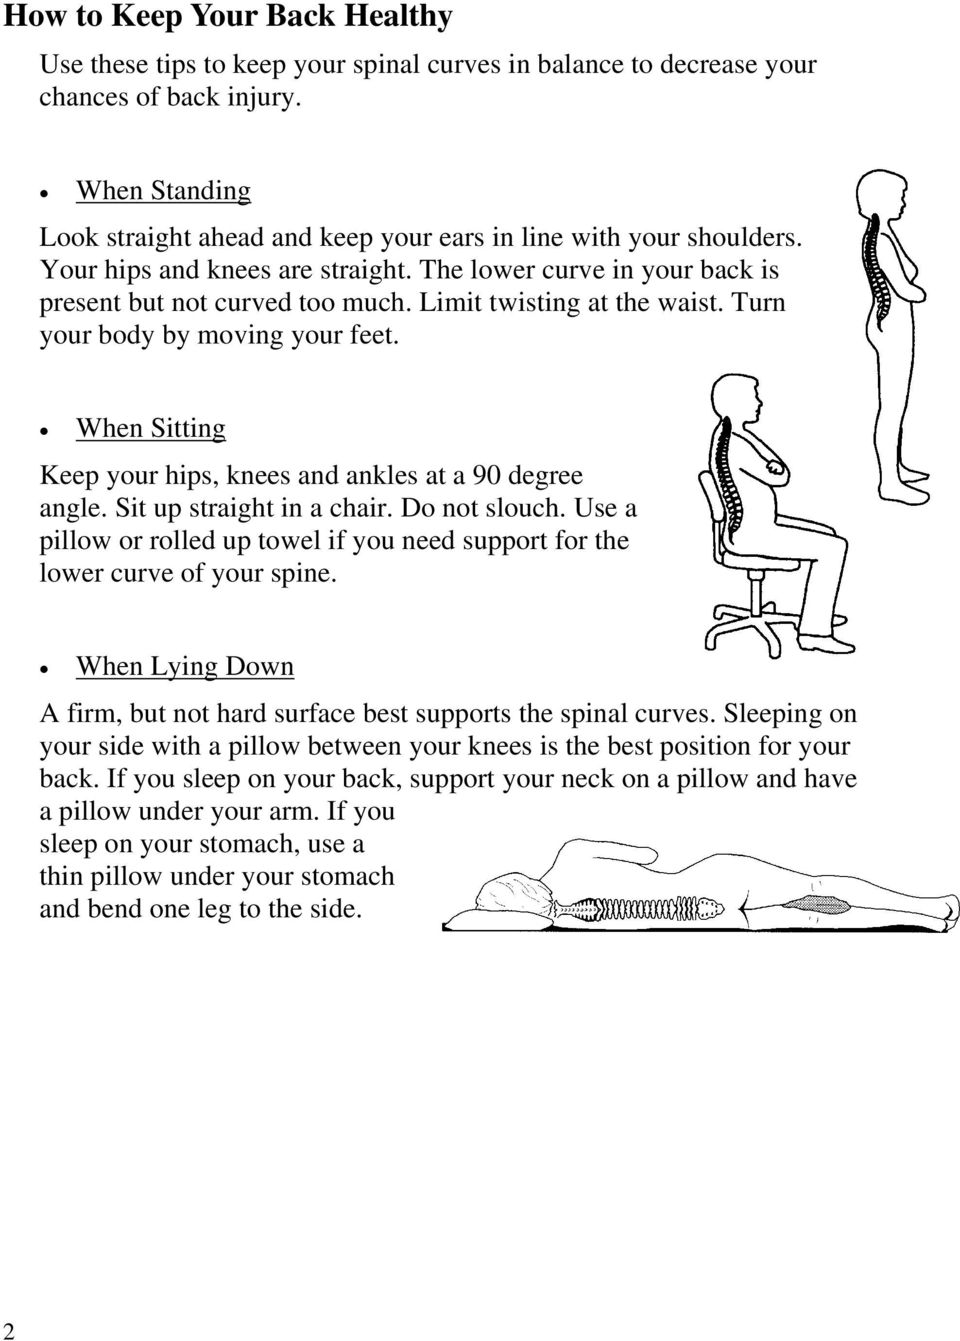 Limit twisting at the waist. Turn your body by moving your feet. When Sitting Keep your hips, knees and ankles at a 90 degree angle. Sit up straight in a chair. Do not slouch.